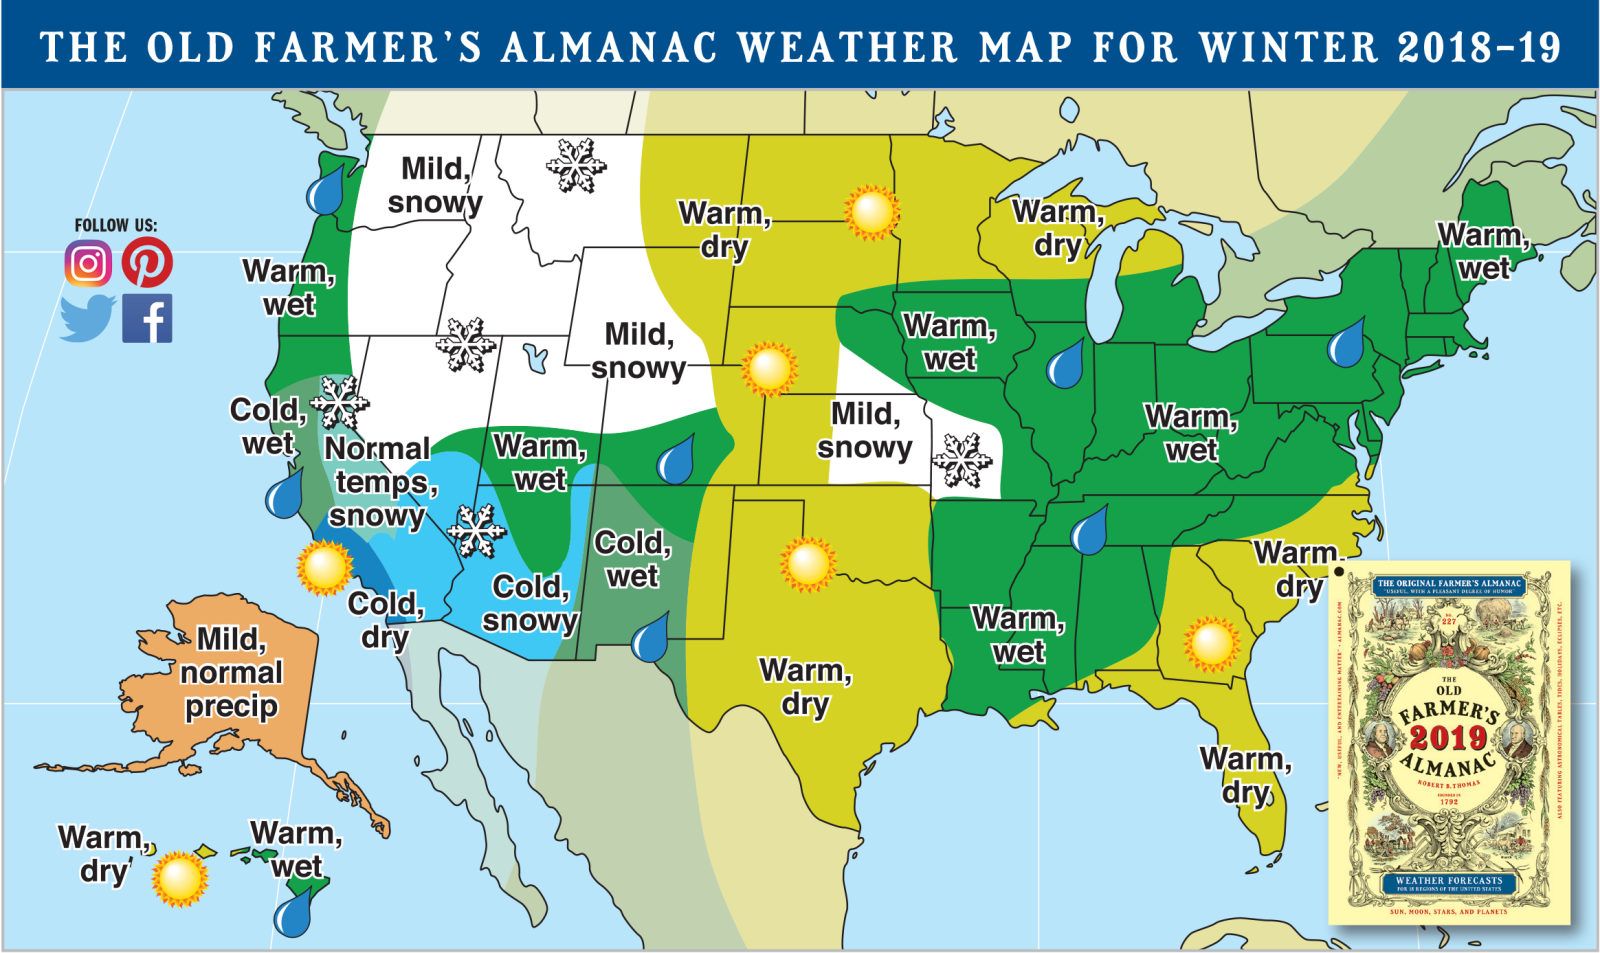 2019 Winter Weather Forecast from The Old Farmer's Almanac - U.S.